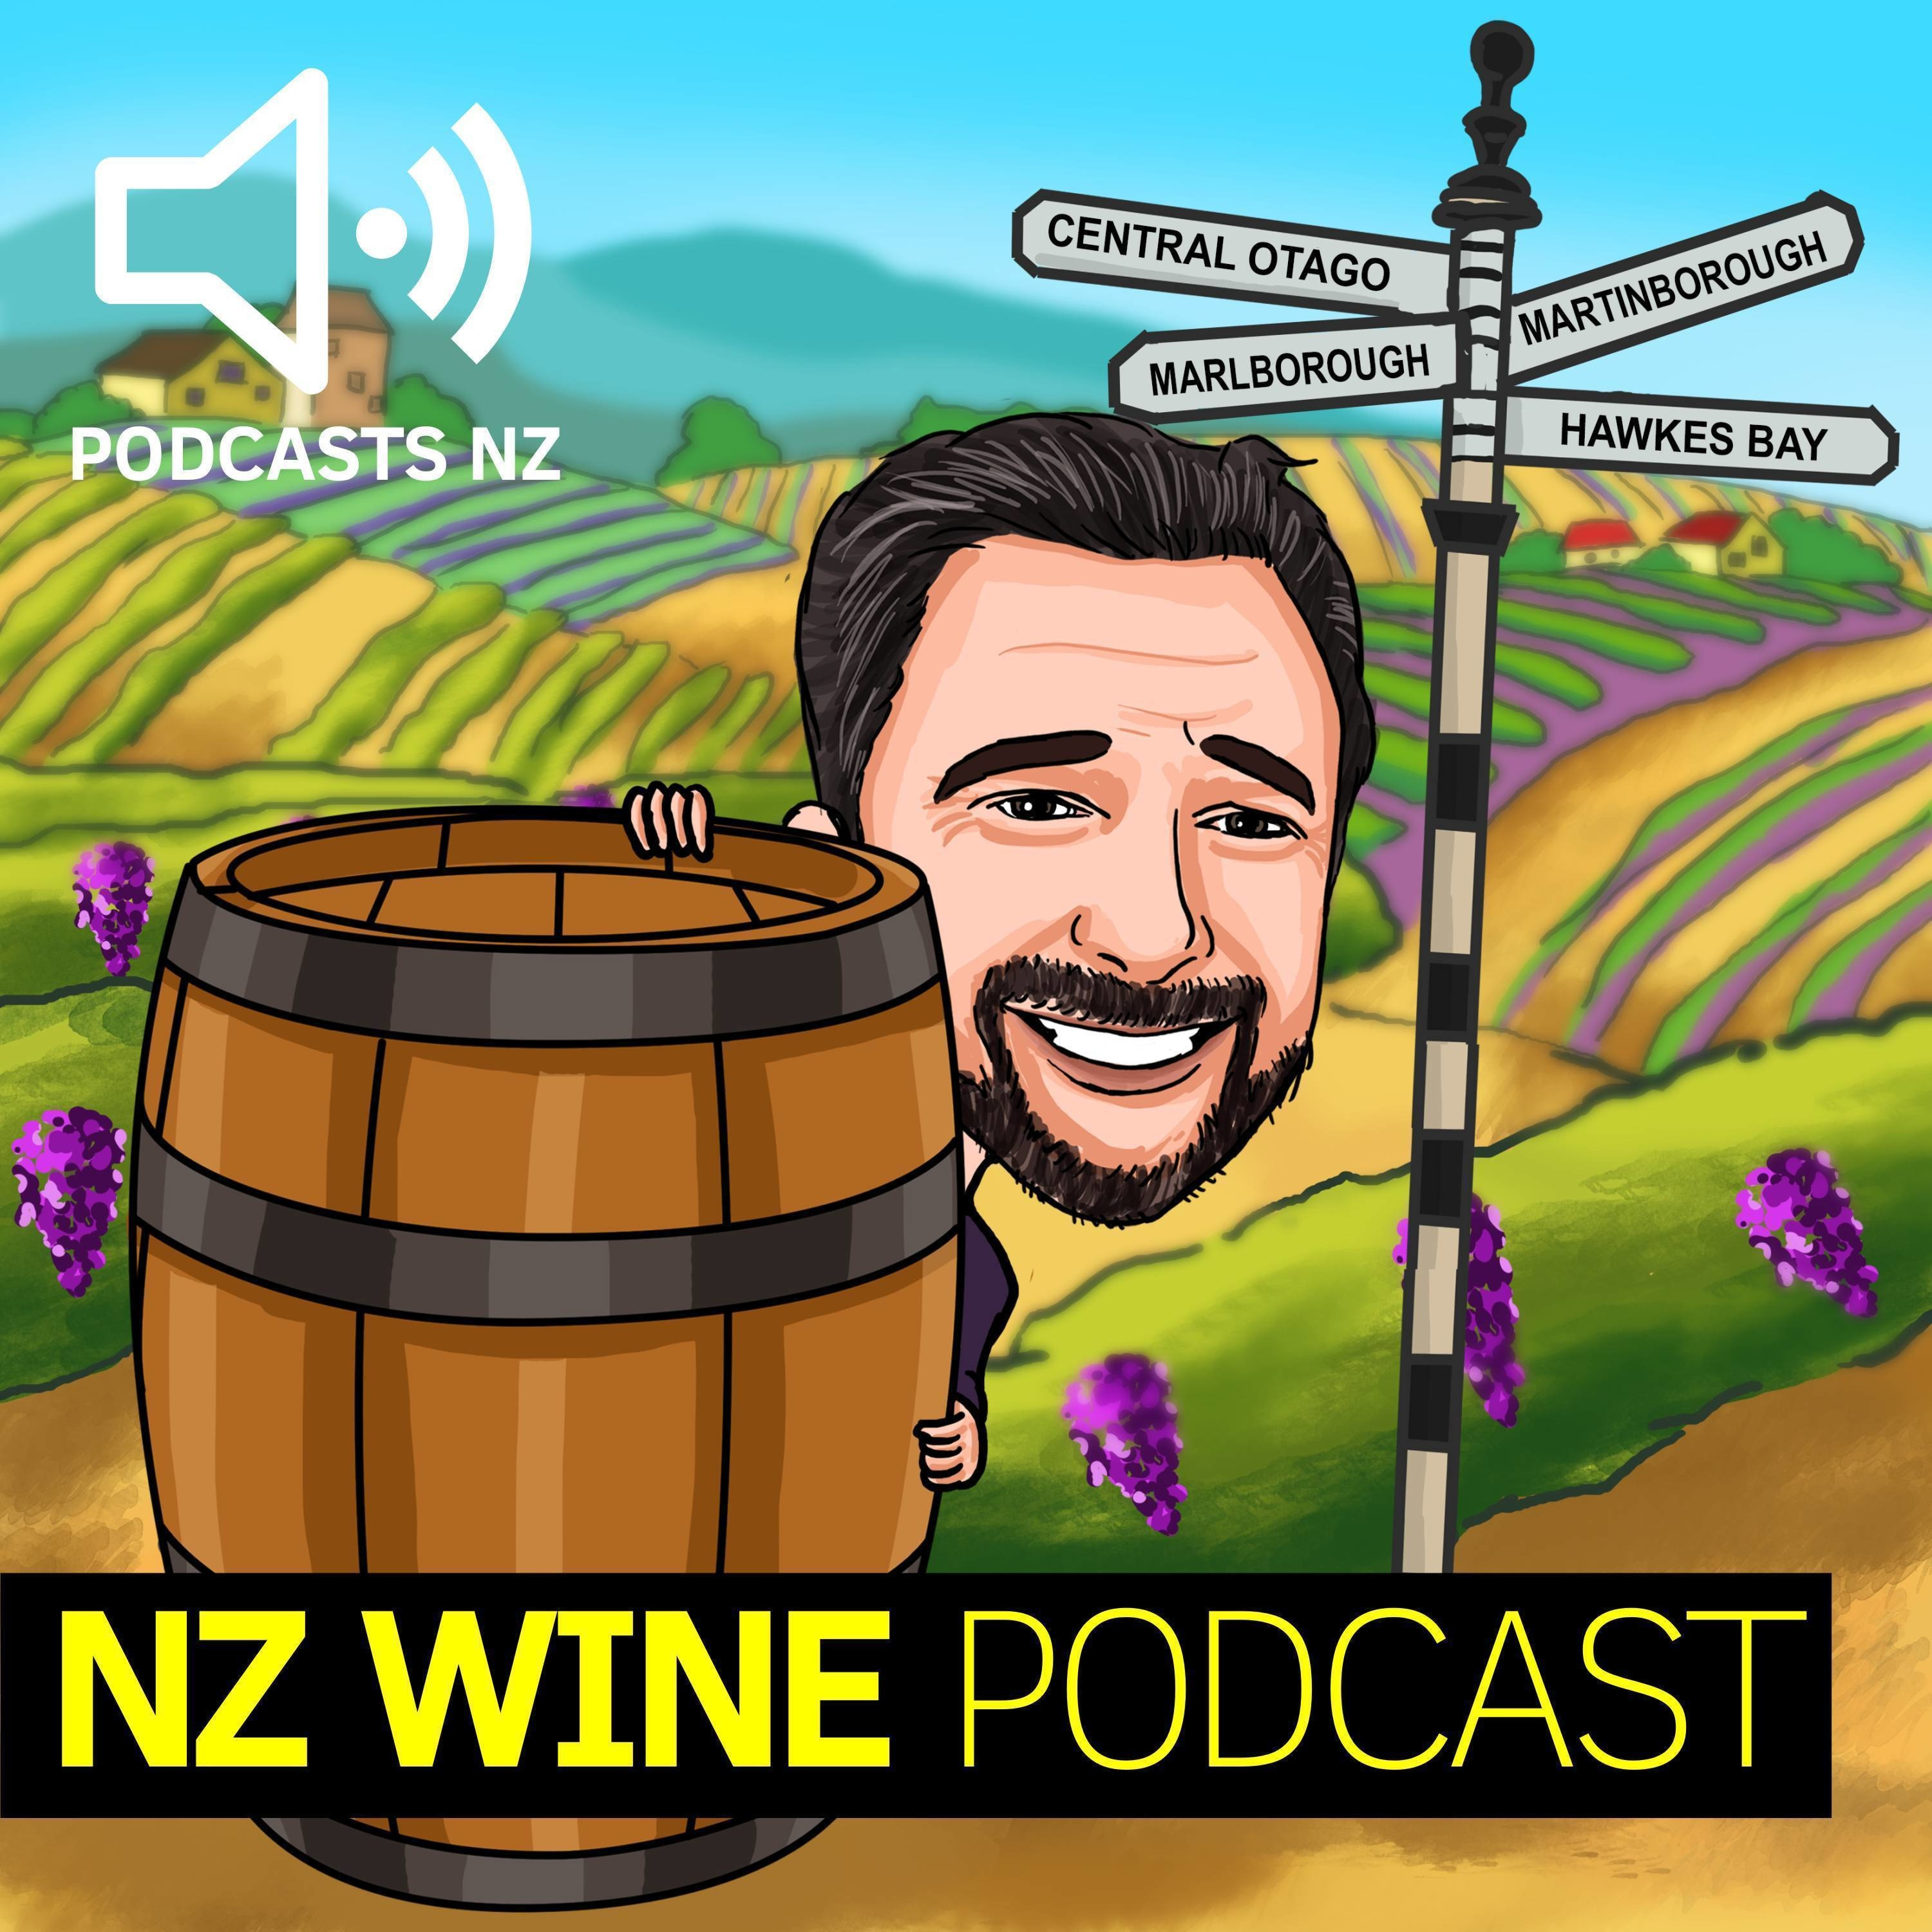 NZ Wine Podcast 56: Renee Dale - Moi Wines